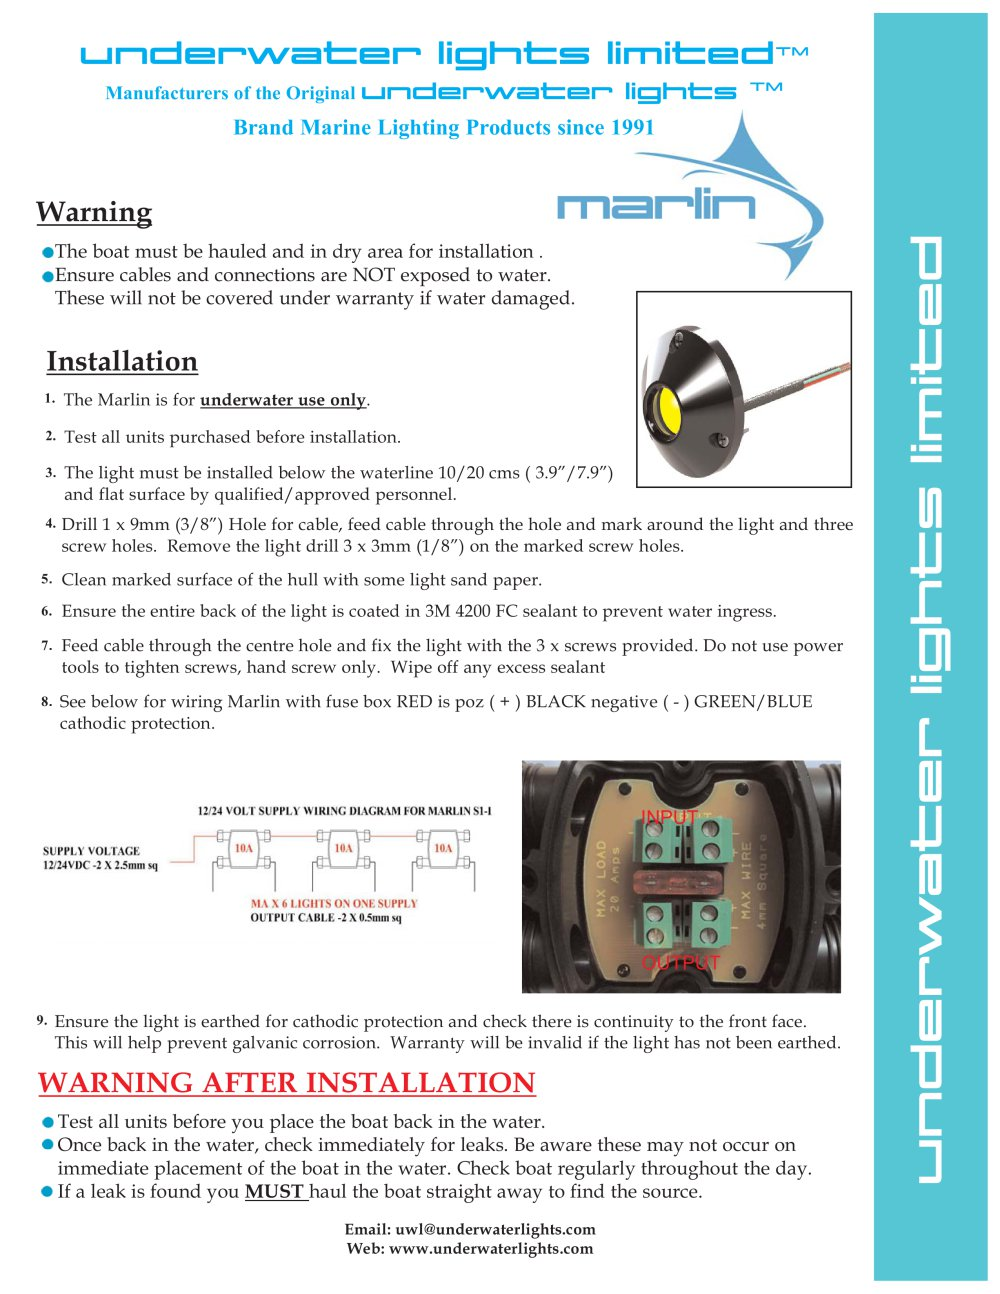 Marlin surface mount led underwater lights limited pdf marlin surface mount led 1 2 pages asfbconference2016 Images